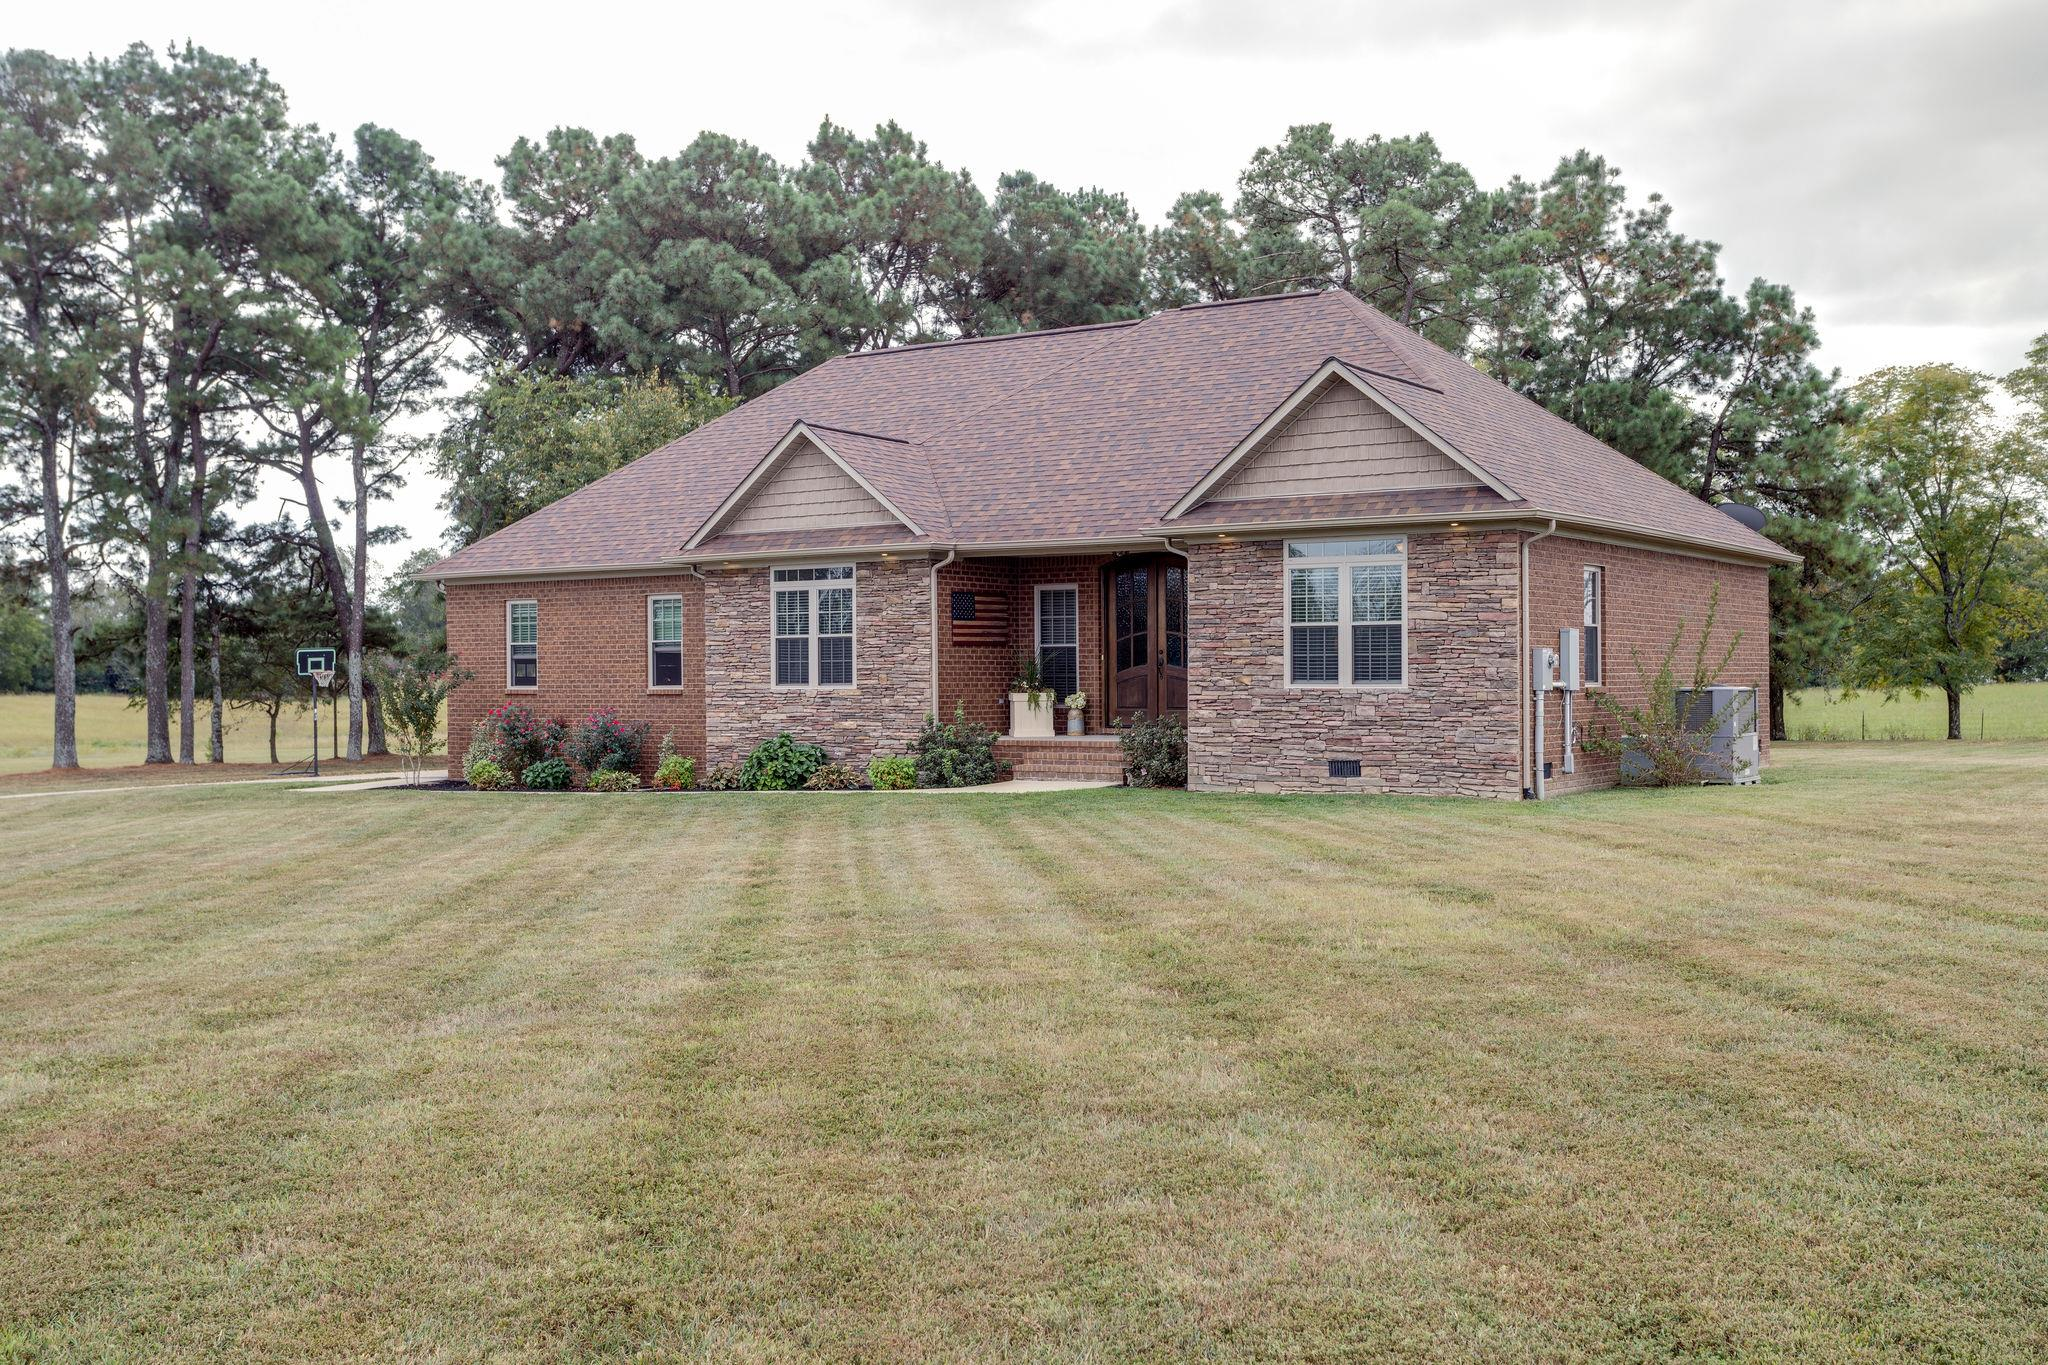 144 New Horizon Cir, Ethridge, TN 38456 - Ethridge, TN real estate listing